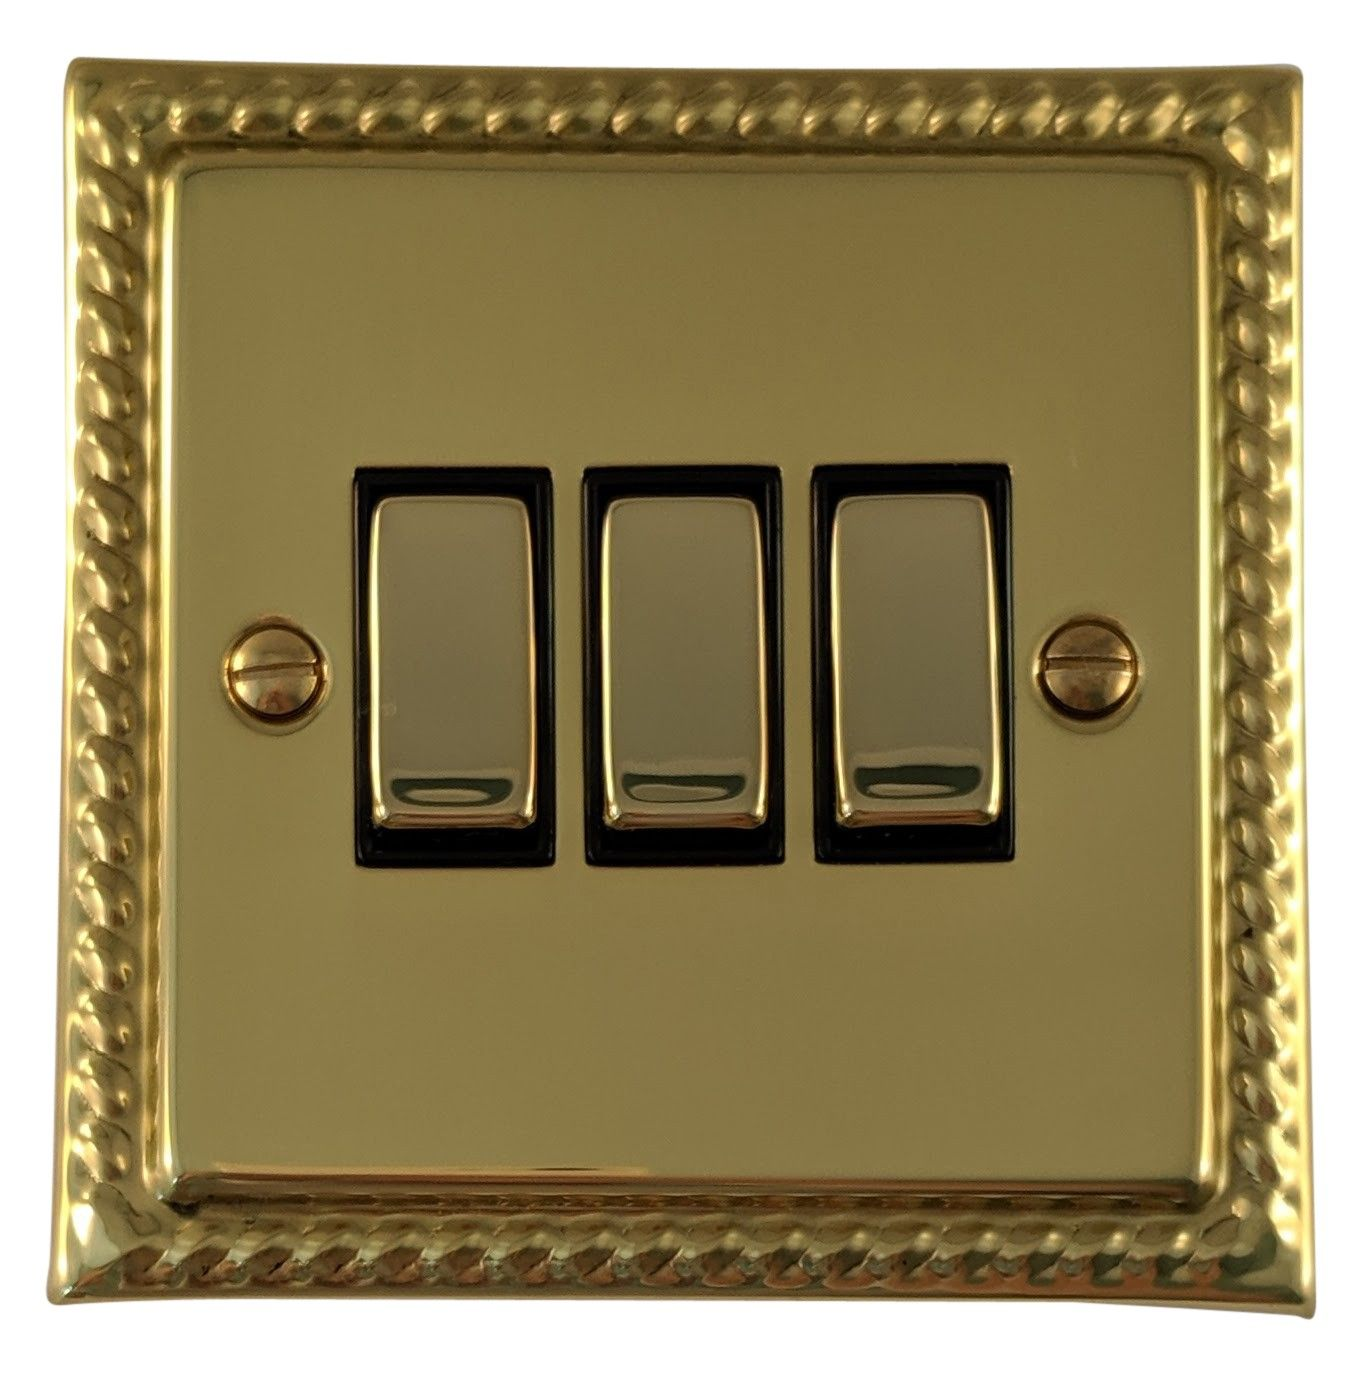 G&H MB303 Monarch Roped Polished Brass 3 Gang 1 or 2 Way Rocker Light Switch